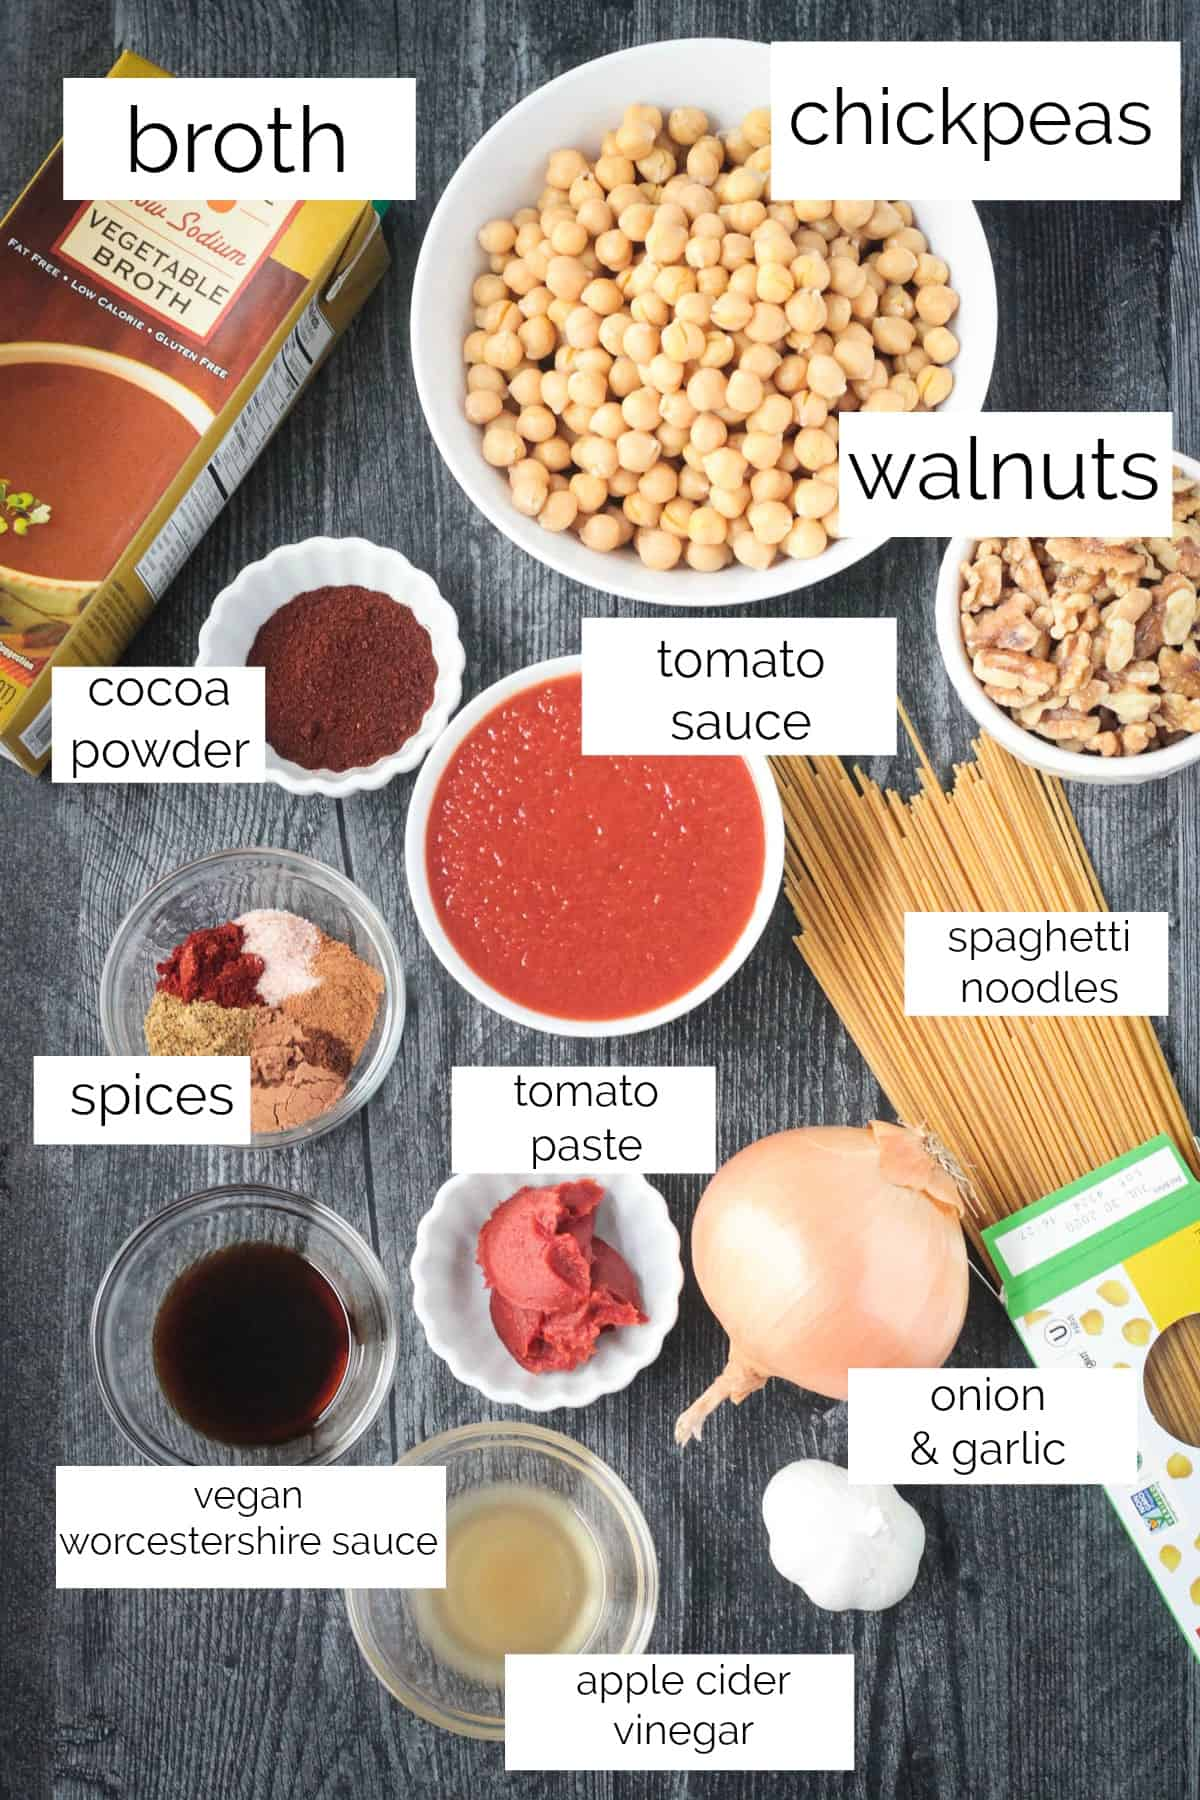 Ingredients: chickpeas, walnuts, broth, tomato sauce, onion, garlic, spices and more.